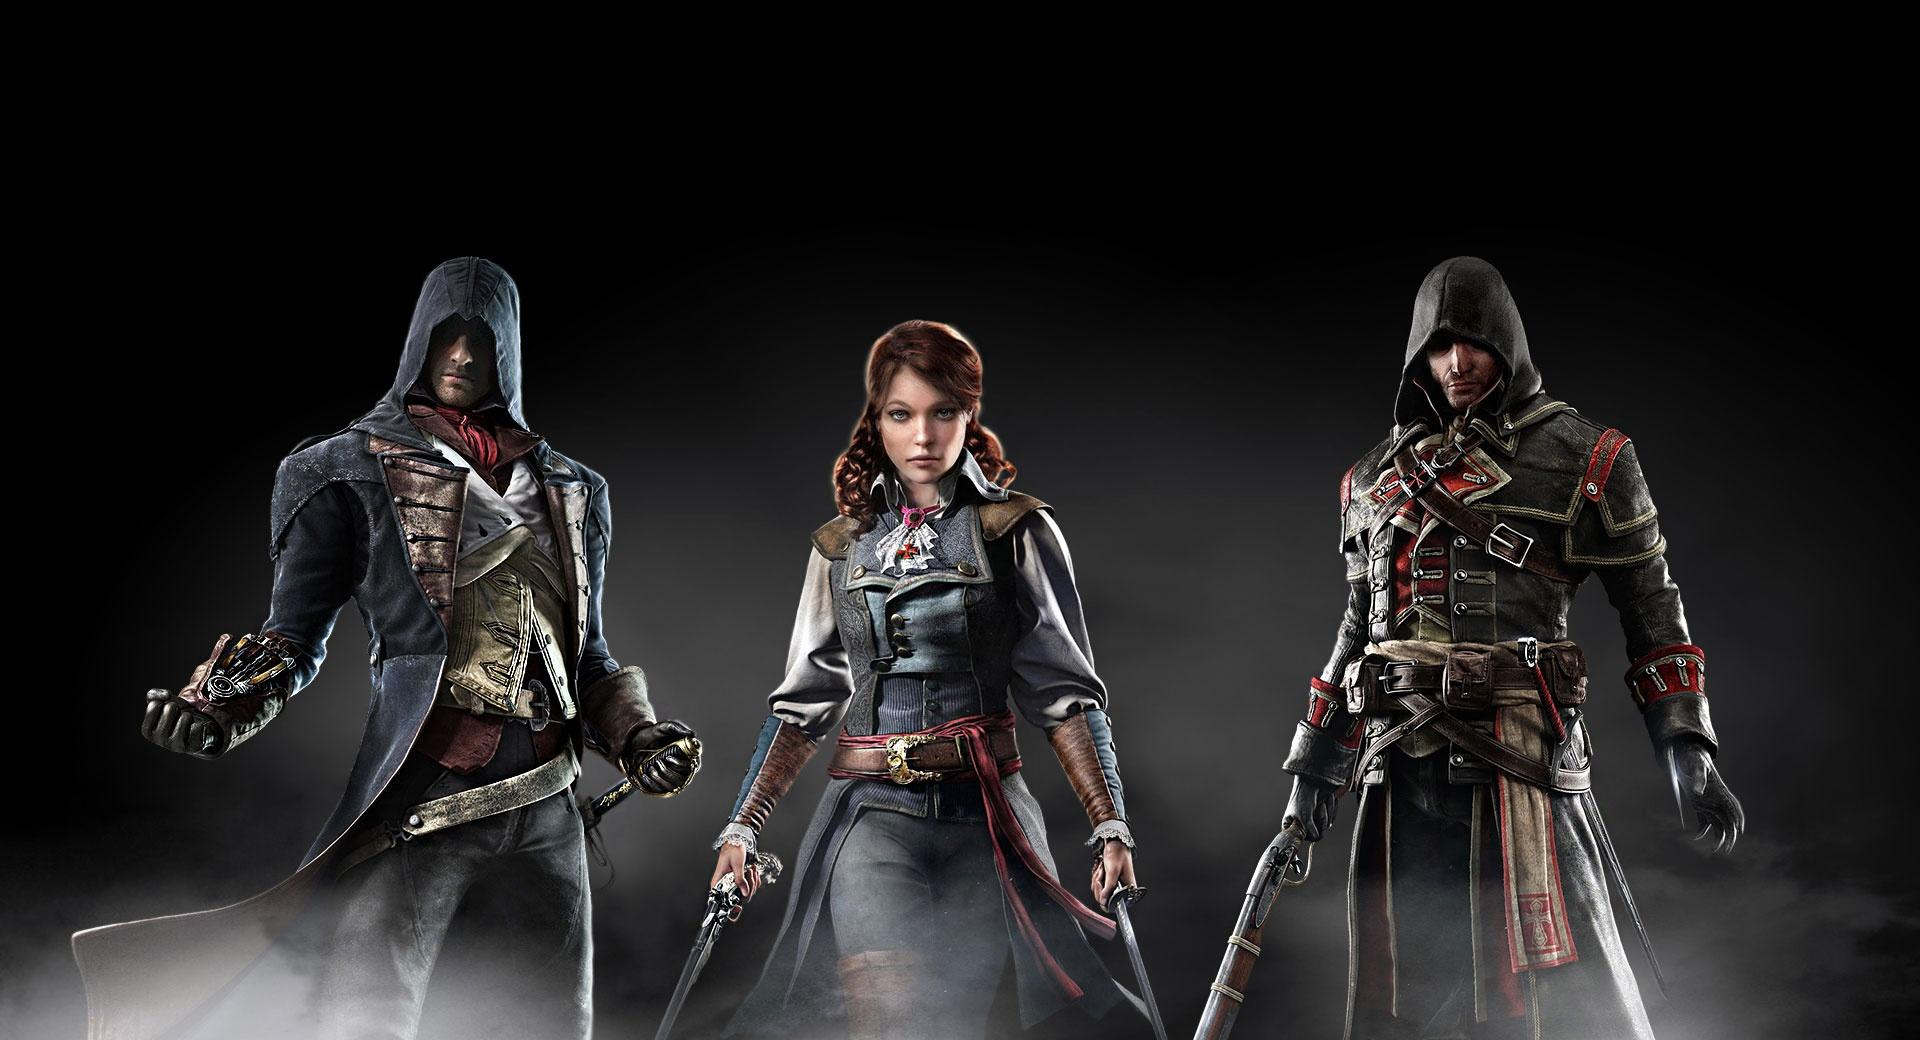 Assassins Creed Unity vs Assassins Creed Rogue wallpapers HD quality